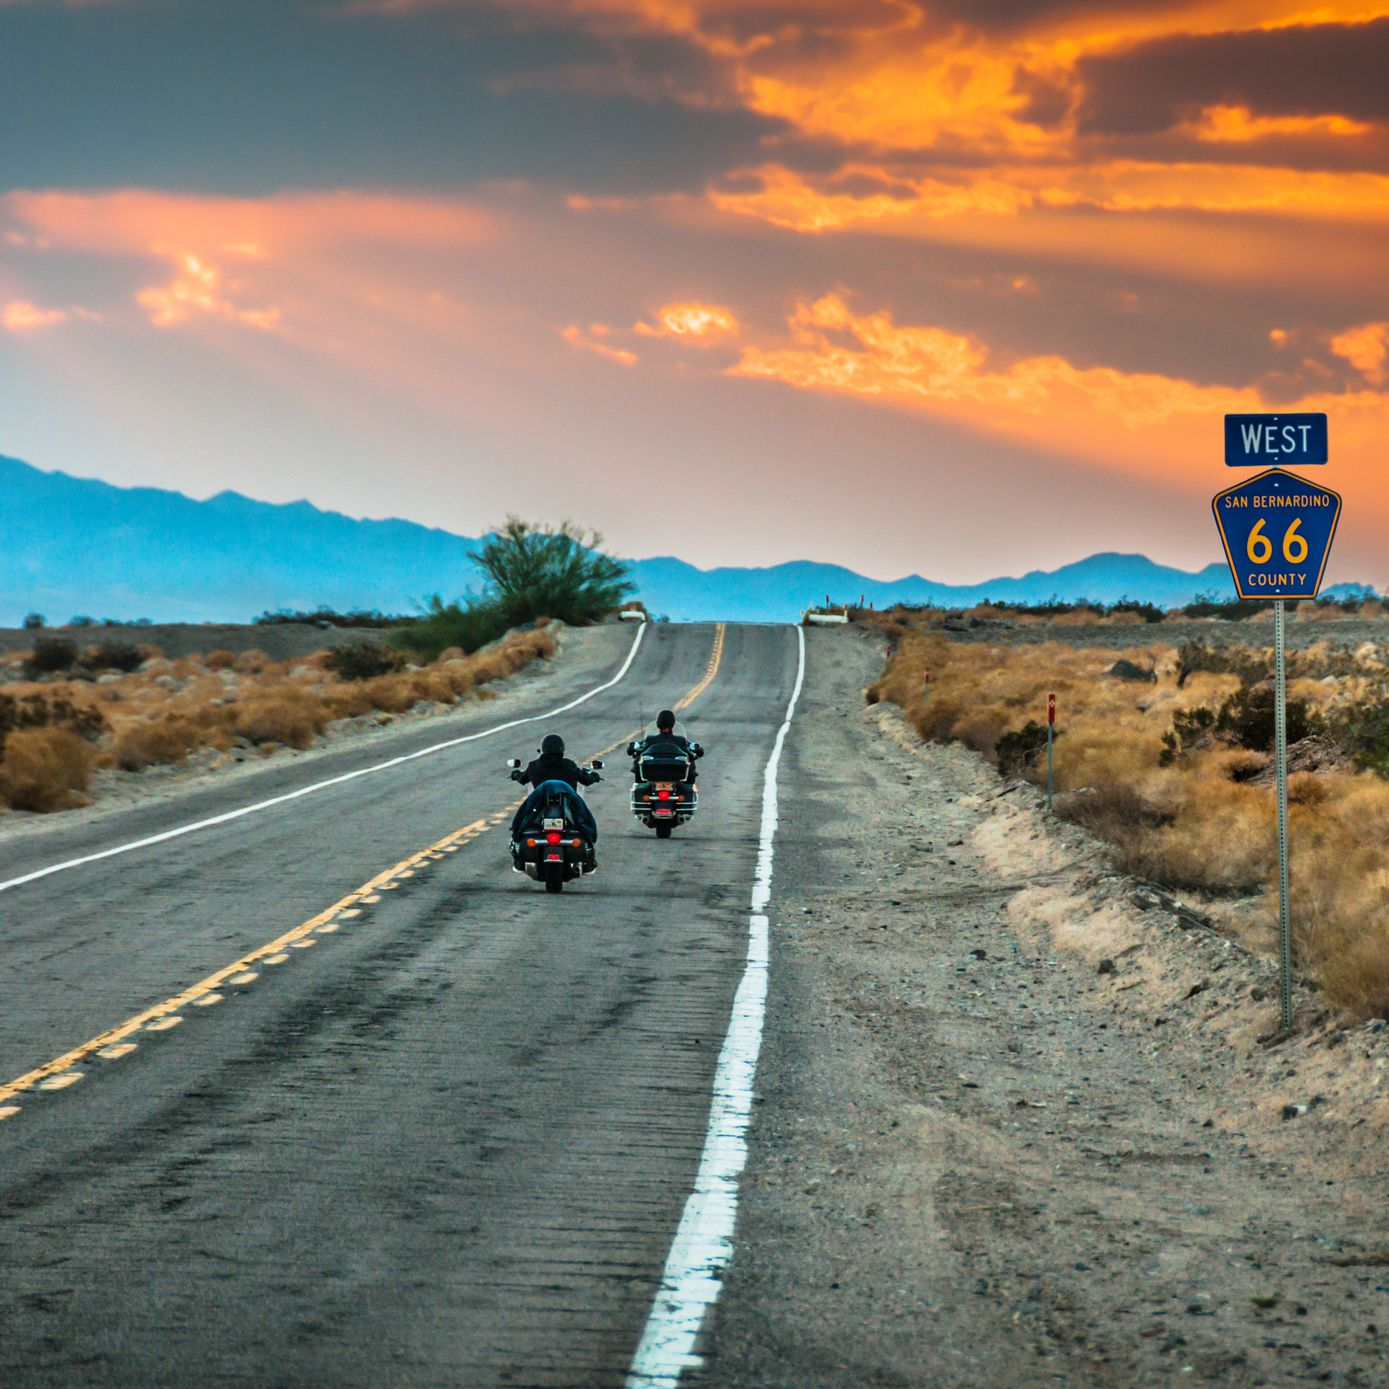 The 8 Best Motorcycle Insurance of 2019